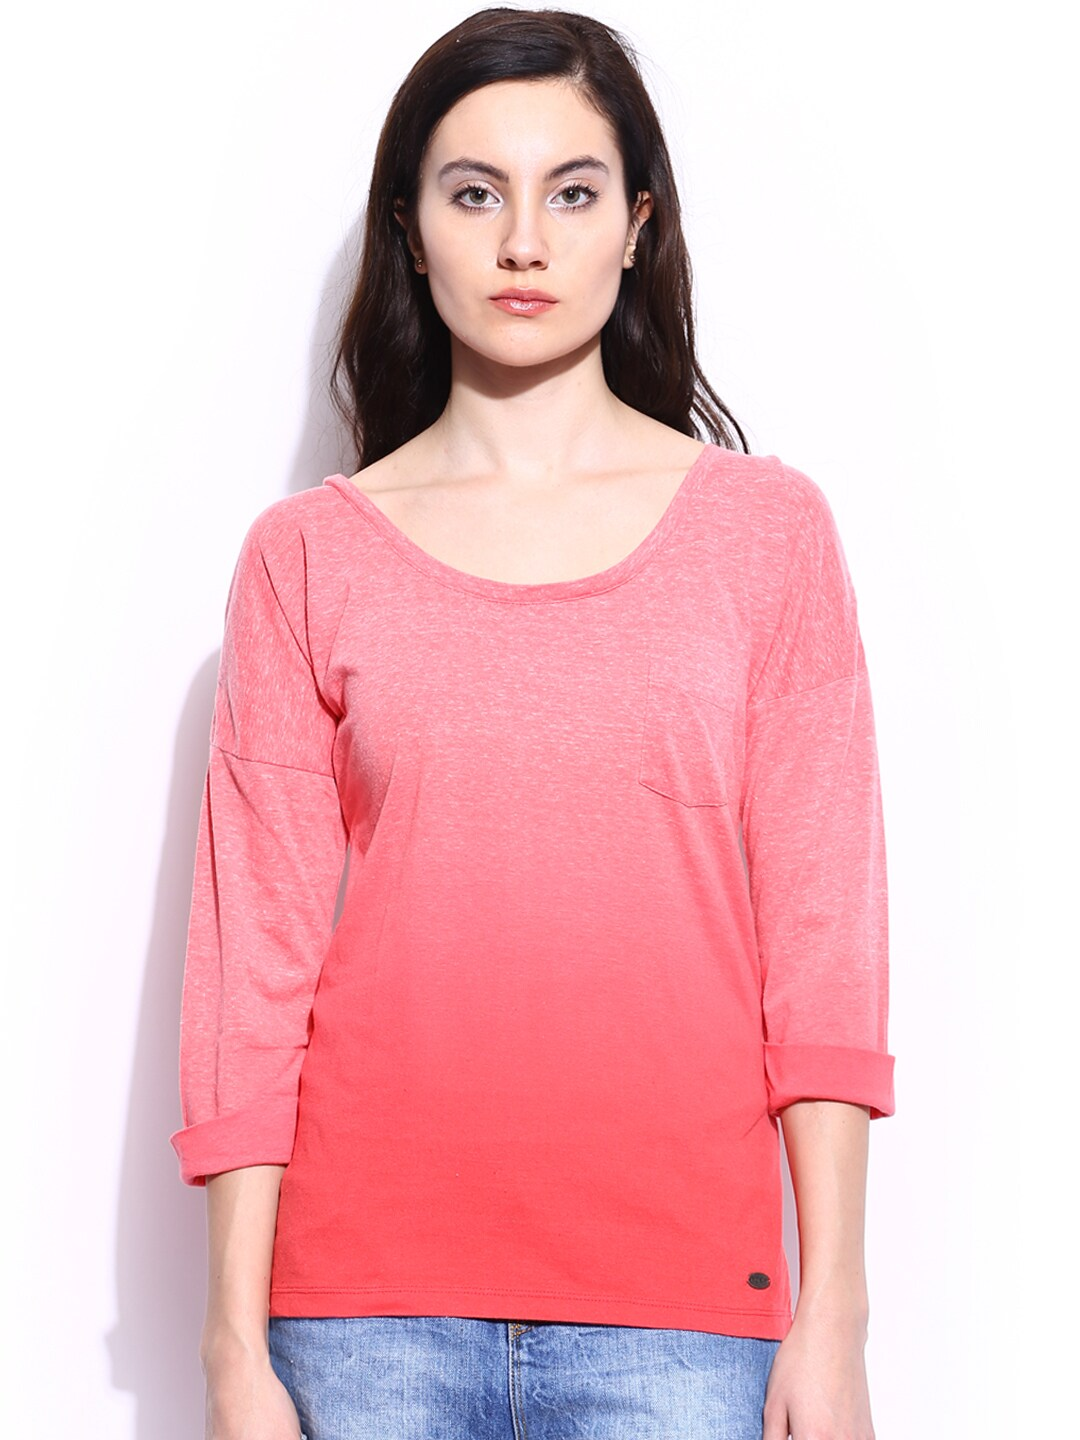 Roxy Roxy Women Coral Pink Arty Ombre-Dyed Top (Multicolor)